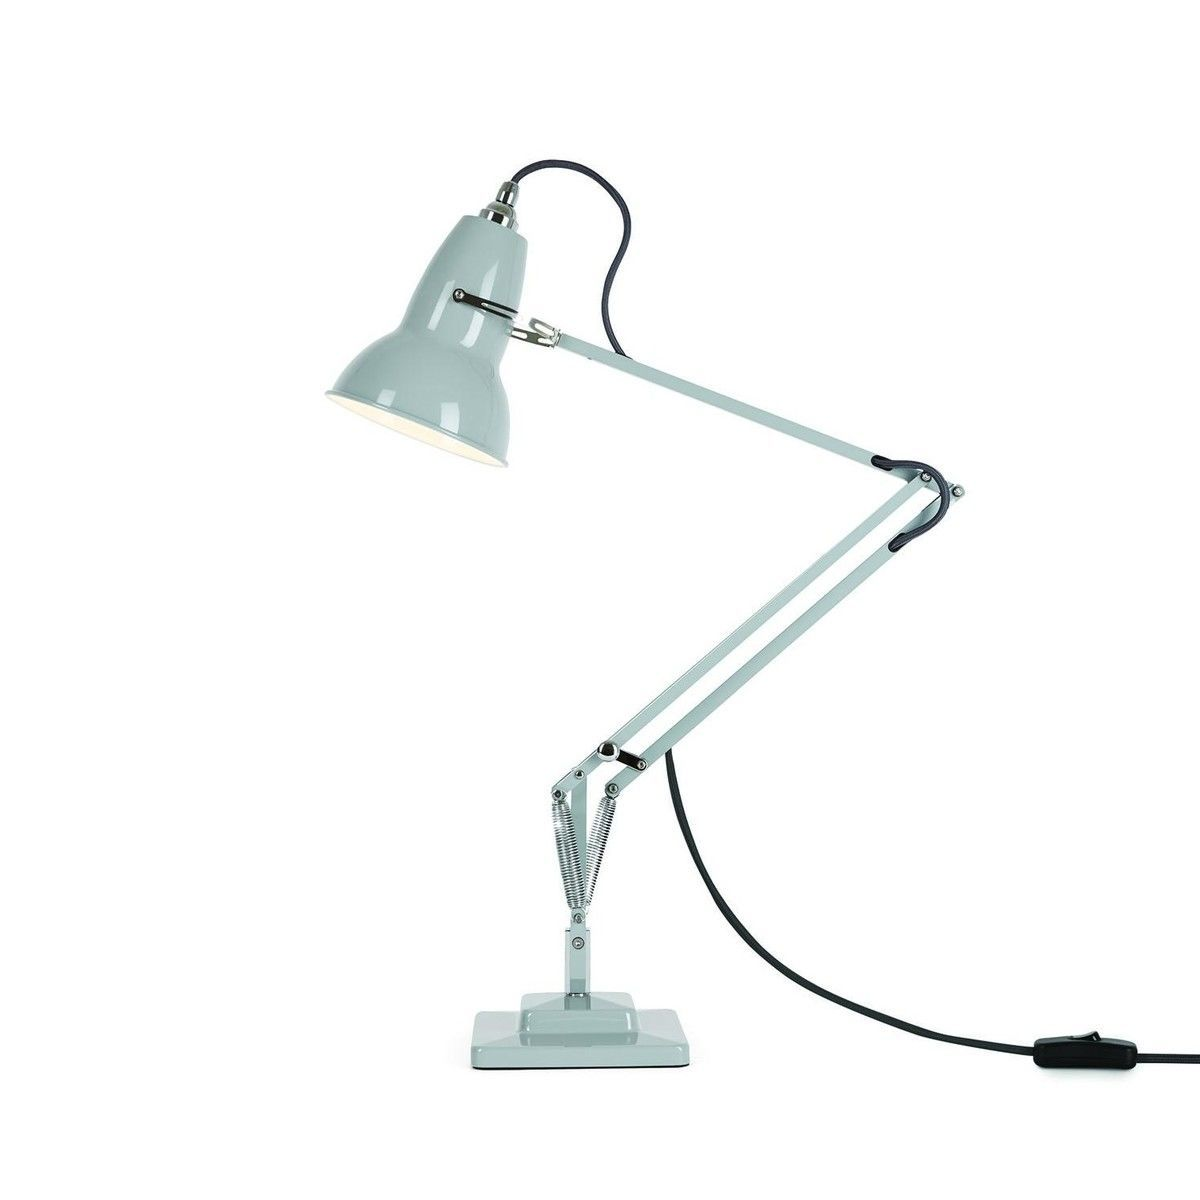 Original 1227 lampe de bureau led anglepoise for Lampe de bureau originale